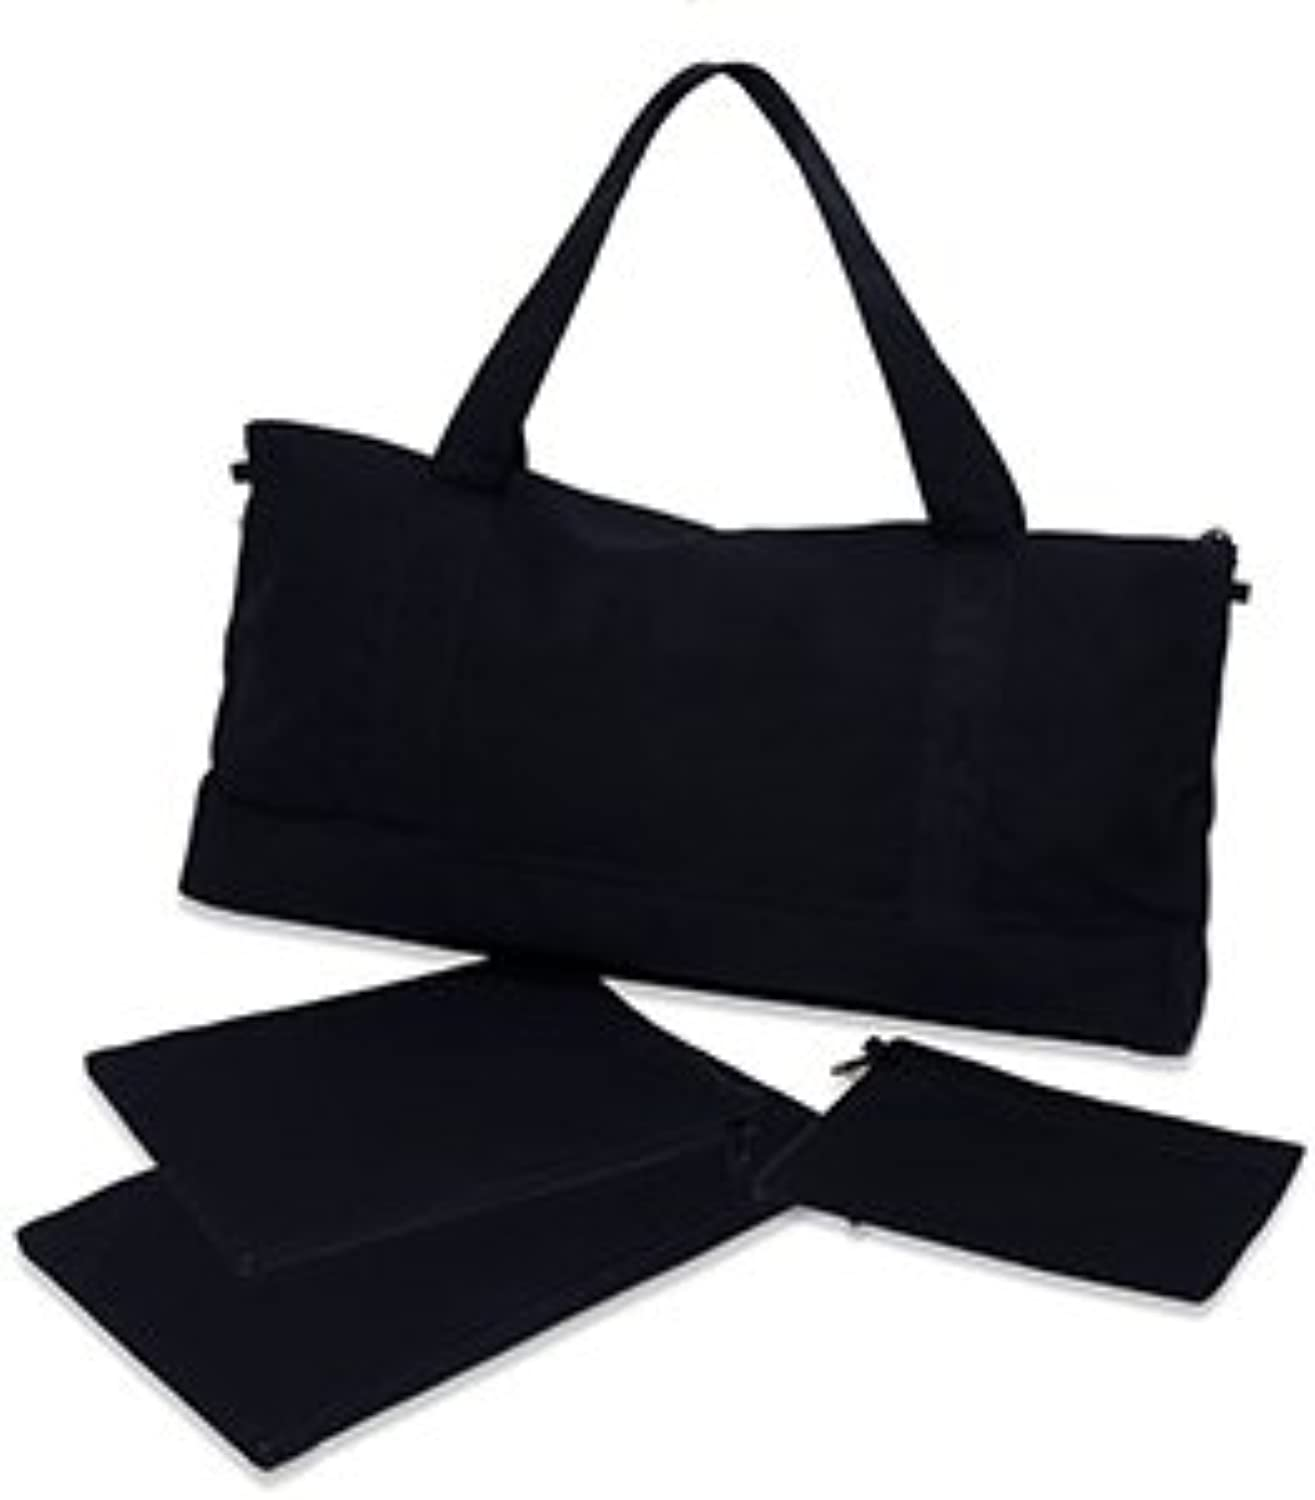 Winds Blow Mah Jongg Black Canvas Over The Shoulder Travel Tote with 3 Zippered Pouches  2 for Tiles and 1 for Card and Money